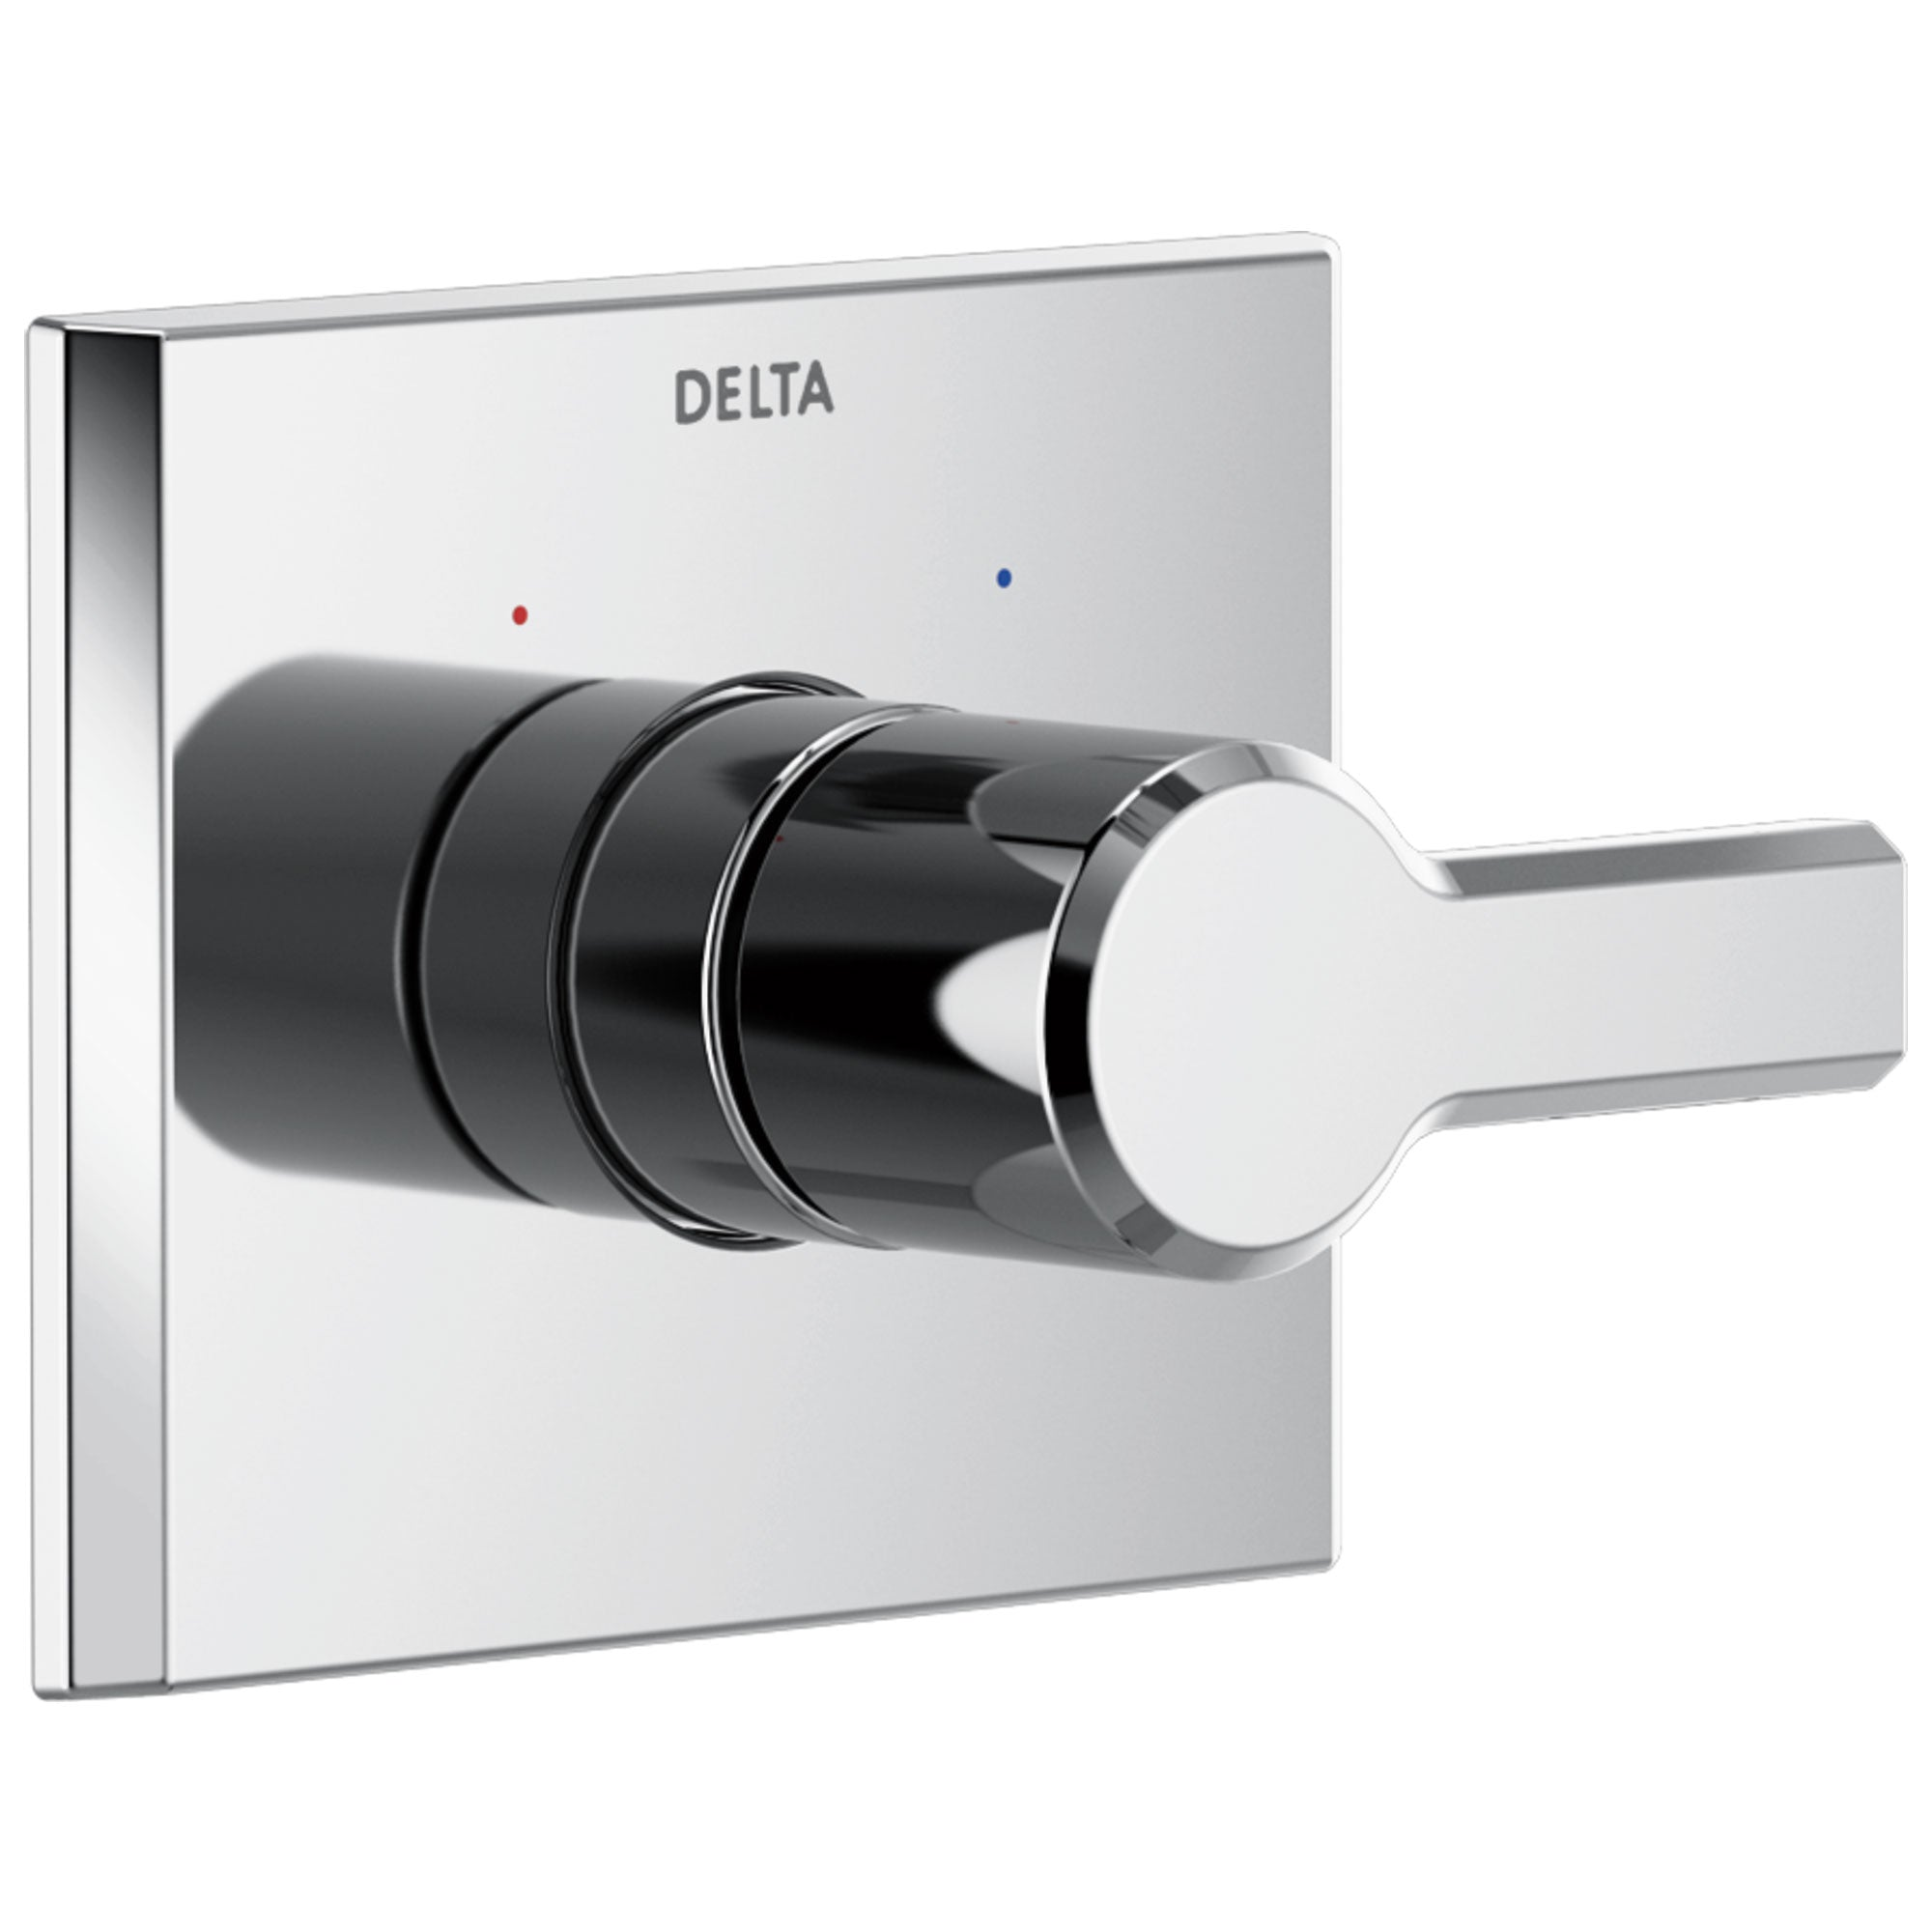 Delta Pivotal Chrome Finish Monitor 14 Series Shower Faucet Control Only Trim Kit (Requires Valve) DT14099